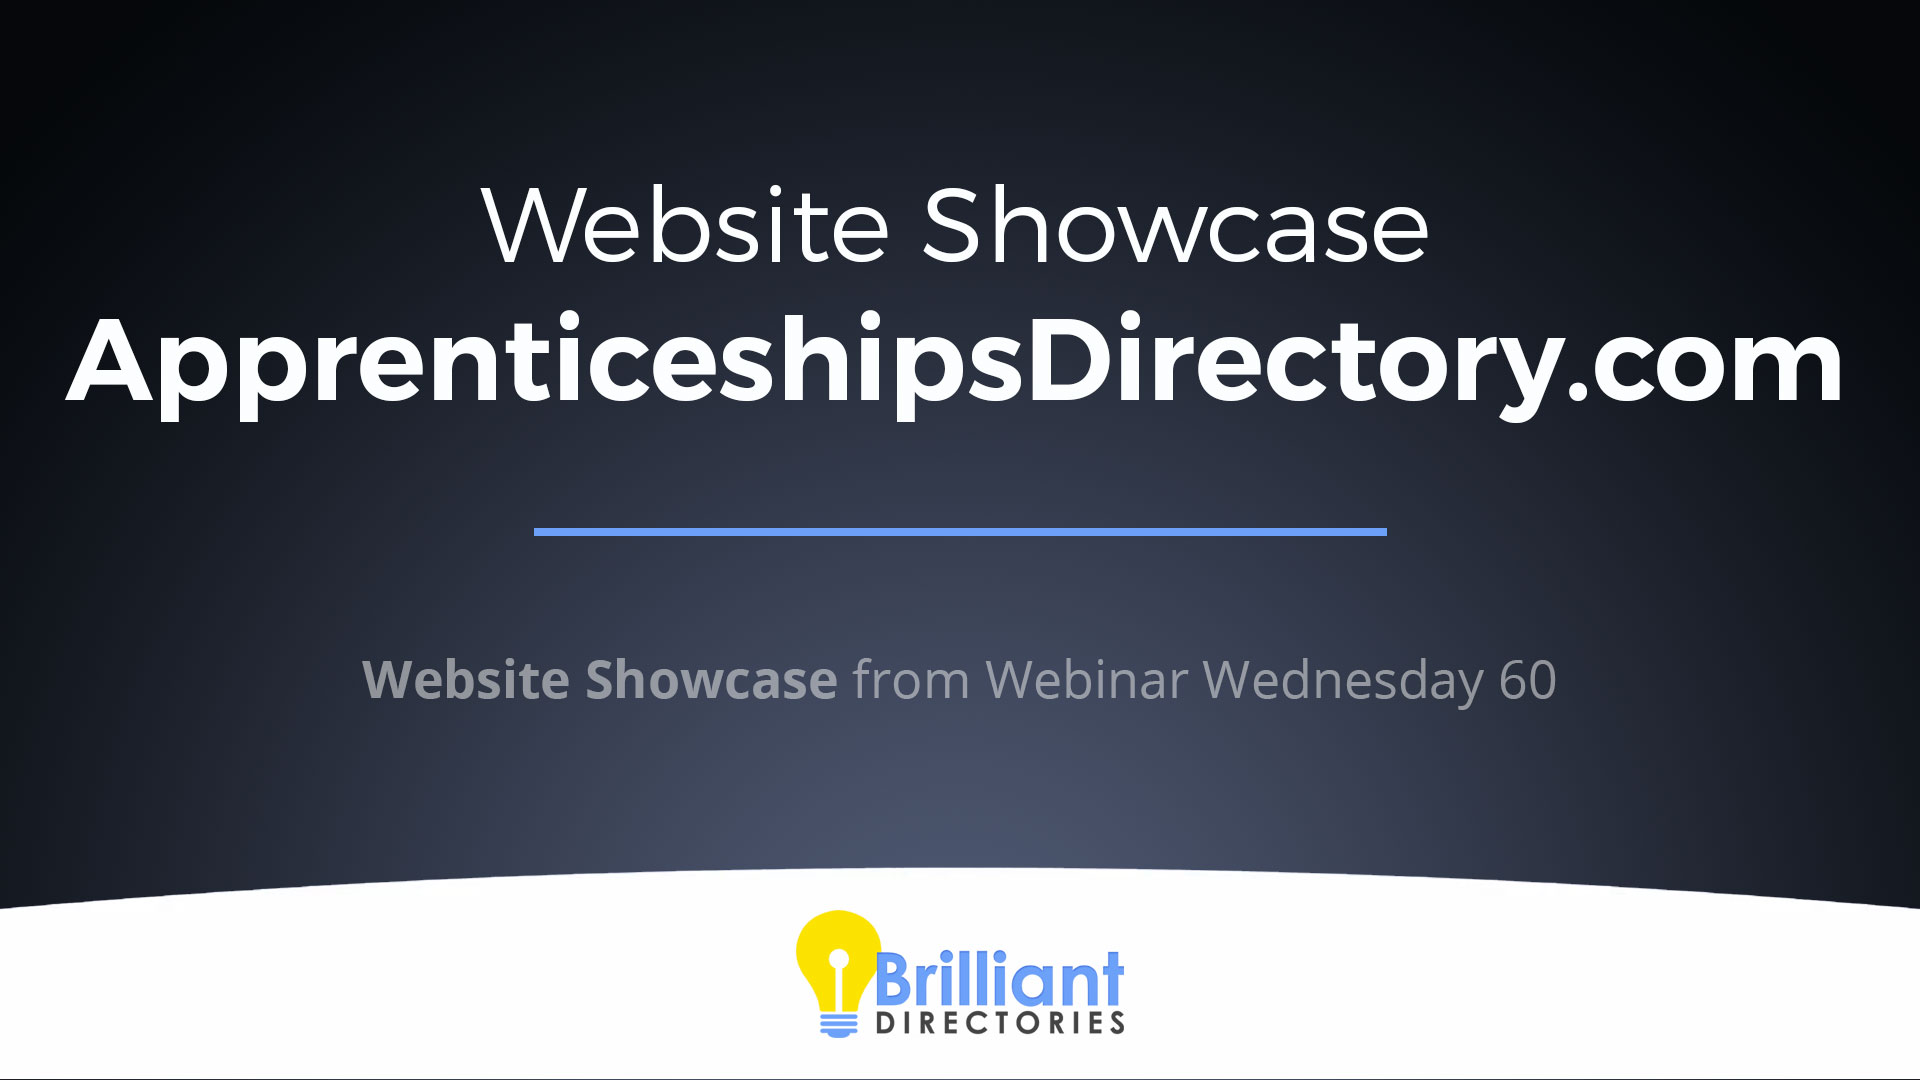 https://www.brilliantdirectories.com/blog/case-study-job-search-website-powered-by-brilliant-directories